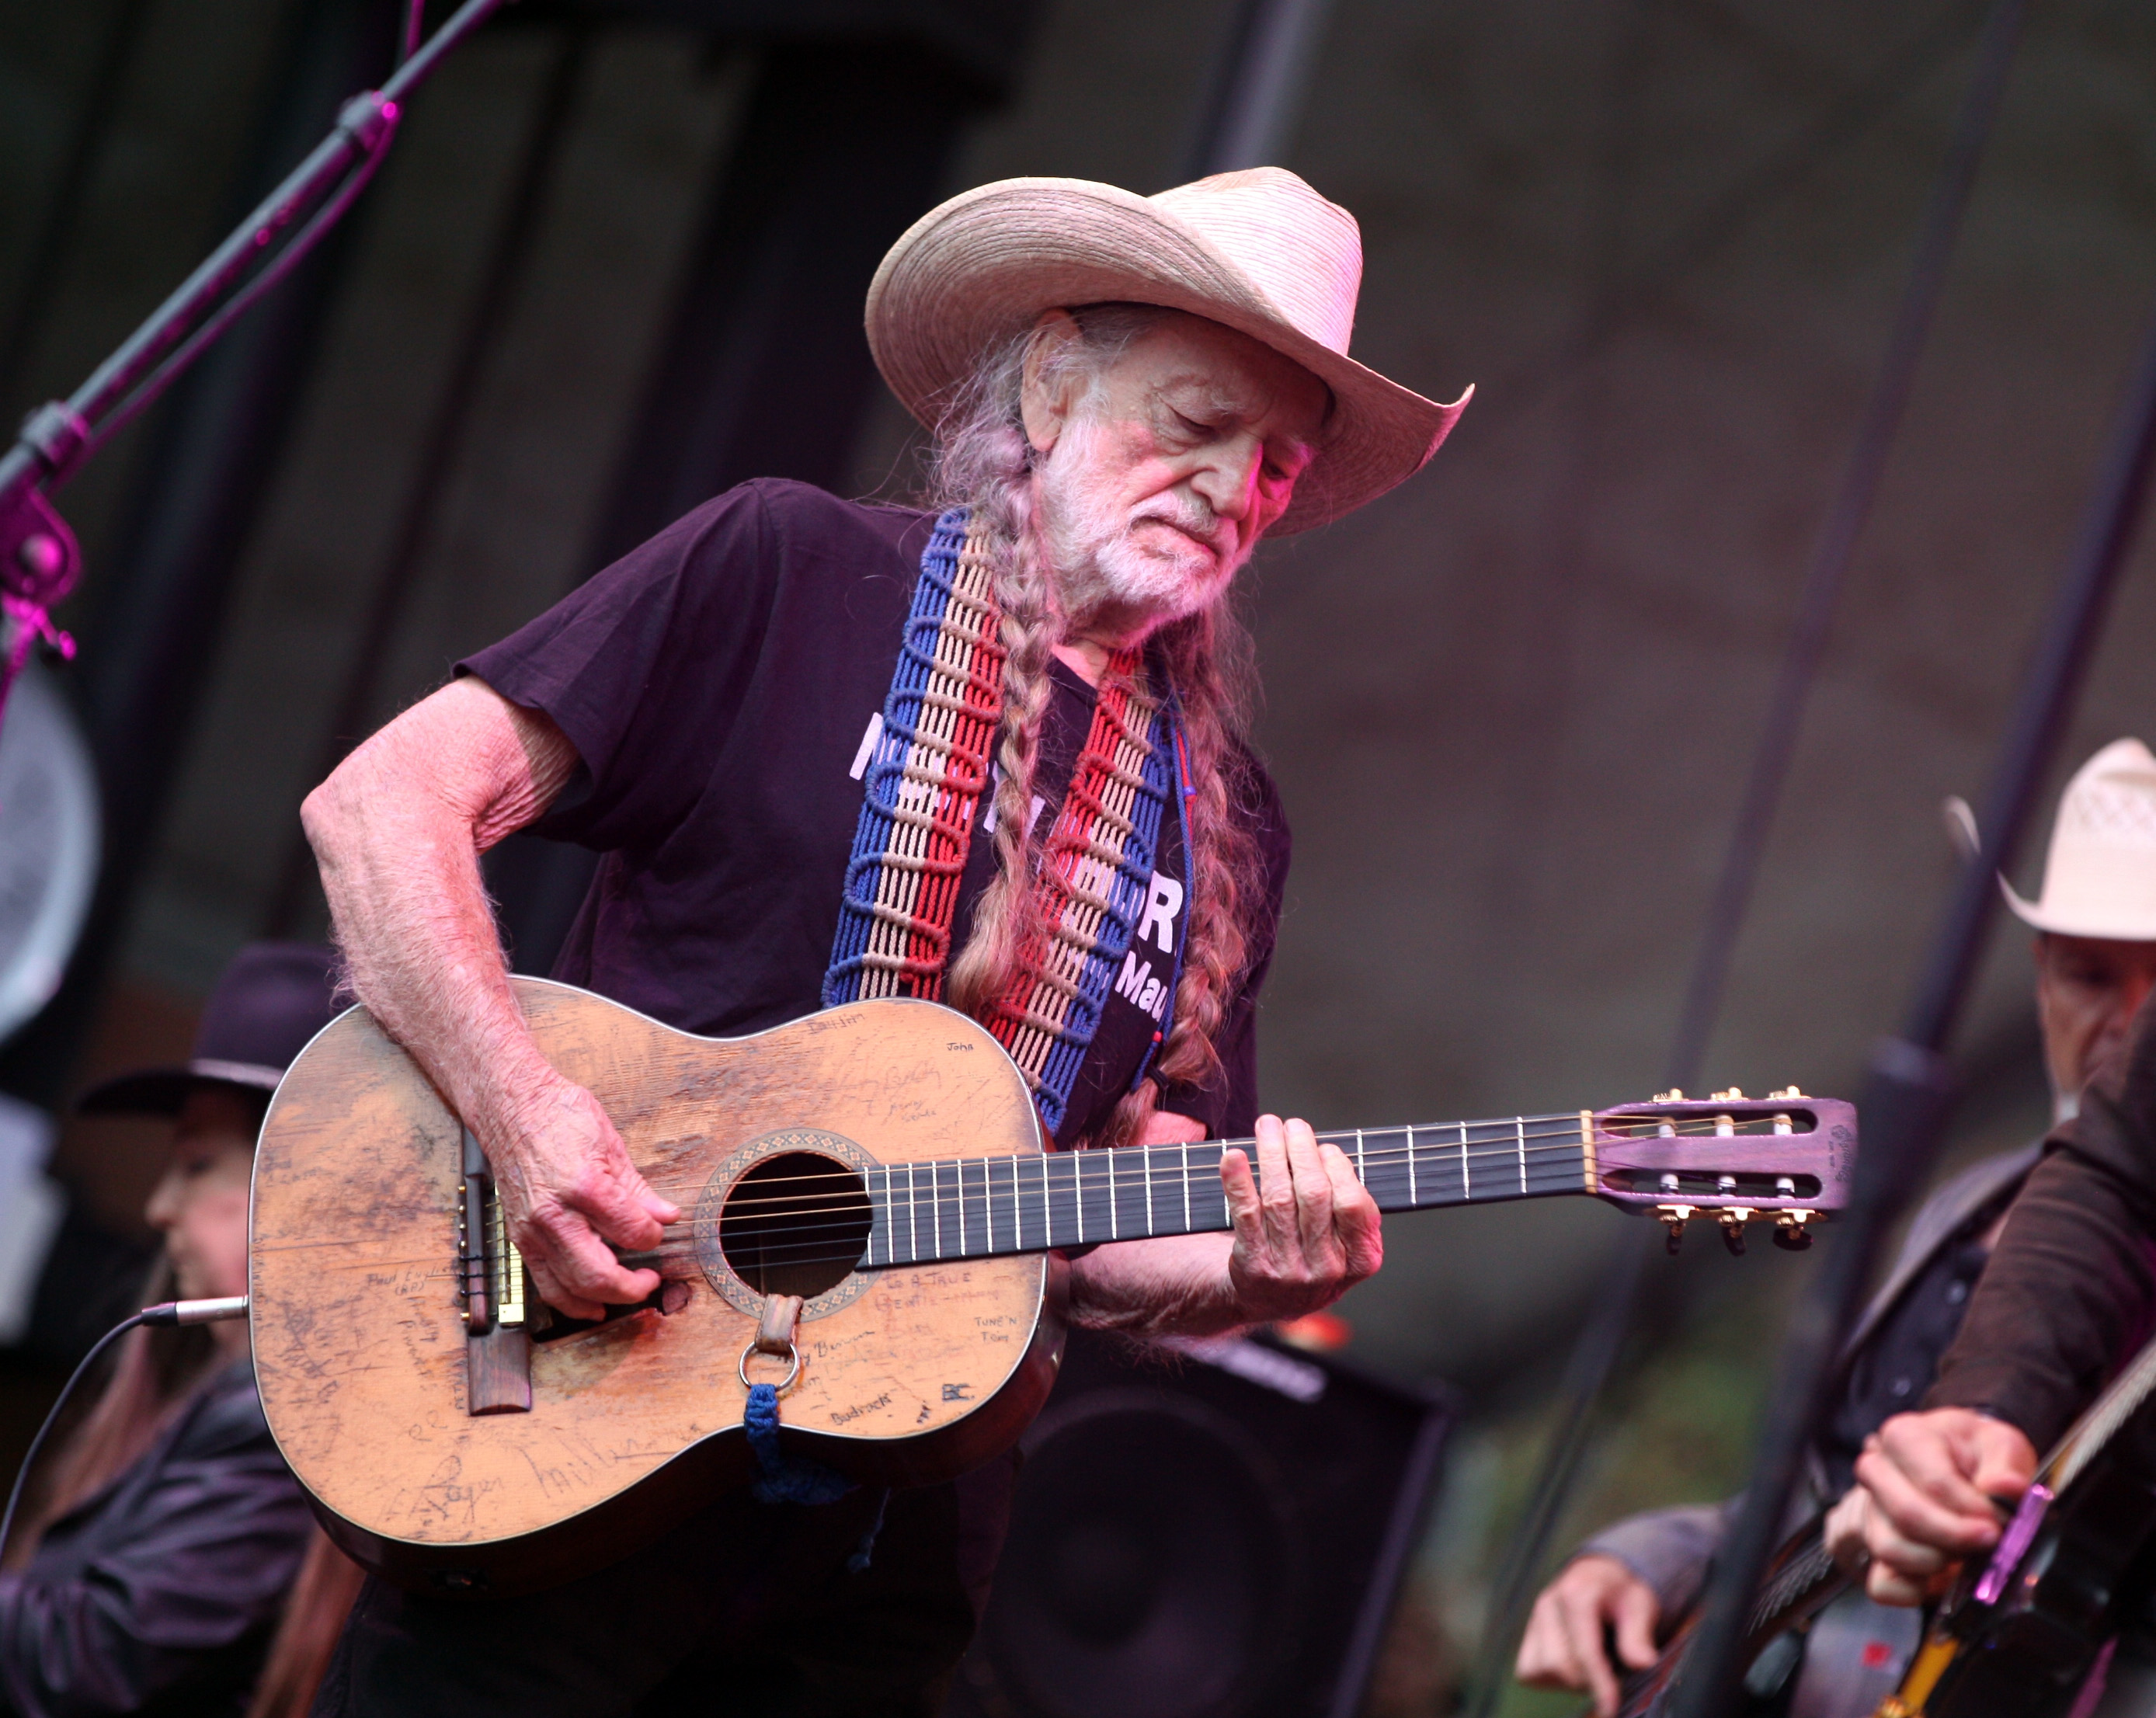 SAN FRANCISCO, CA - AUGUST 11:  Musician Willie Nelson performs at the Sutro Stage during Day 3 of the 2013 Outside Lands Mus